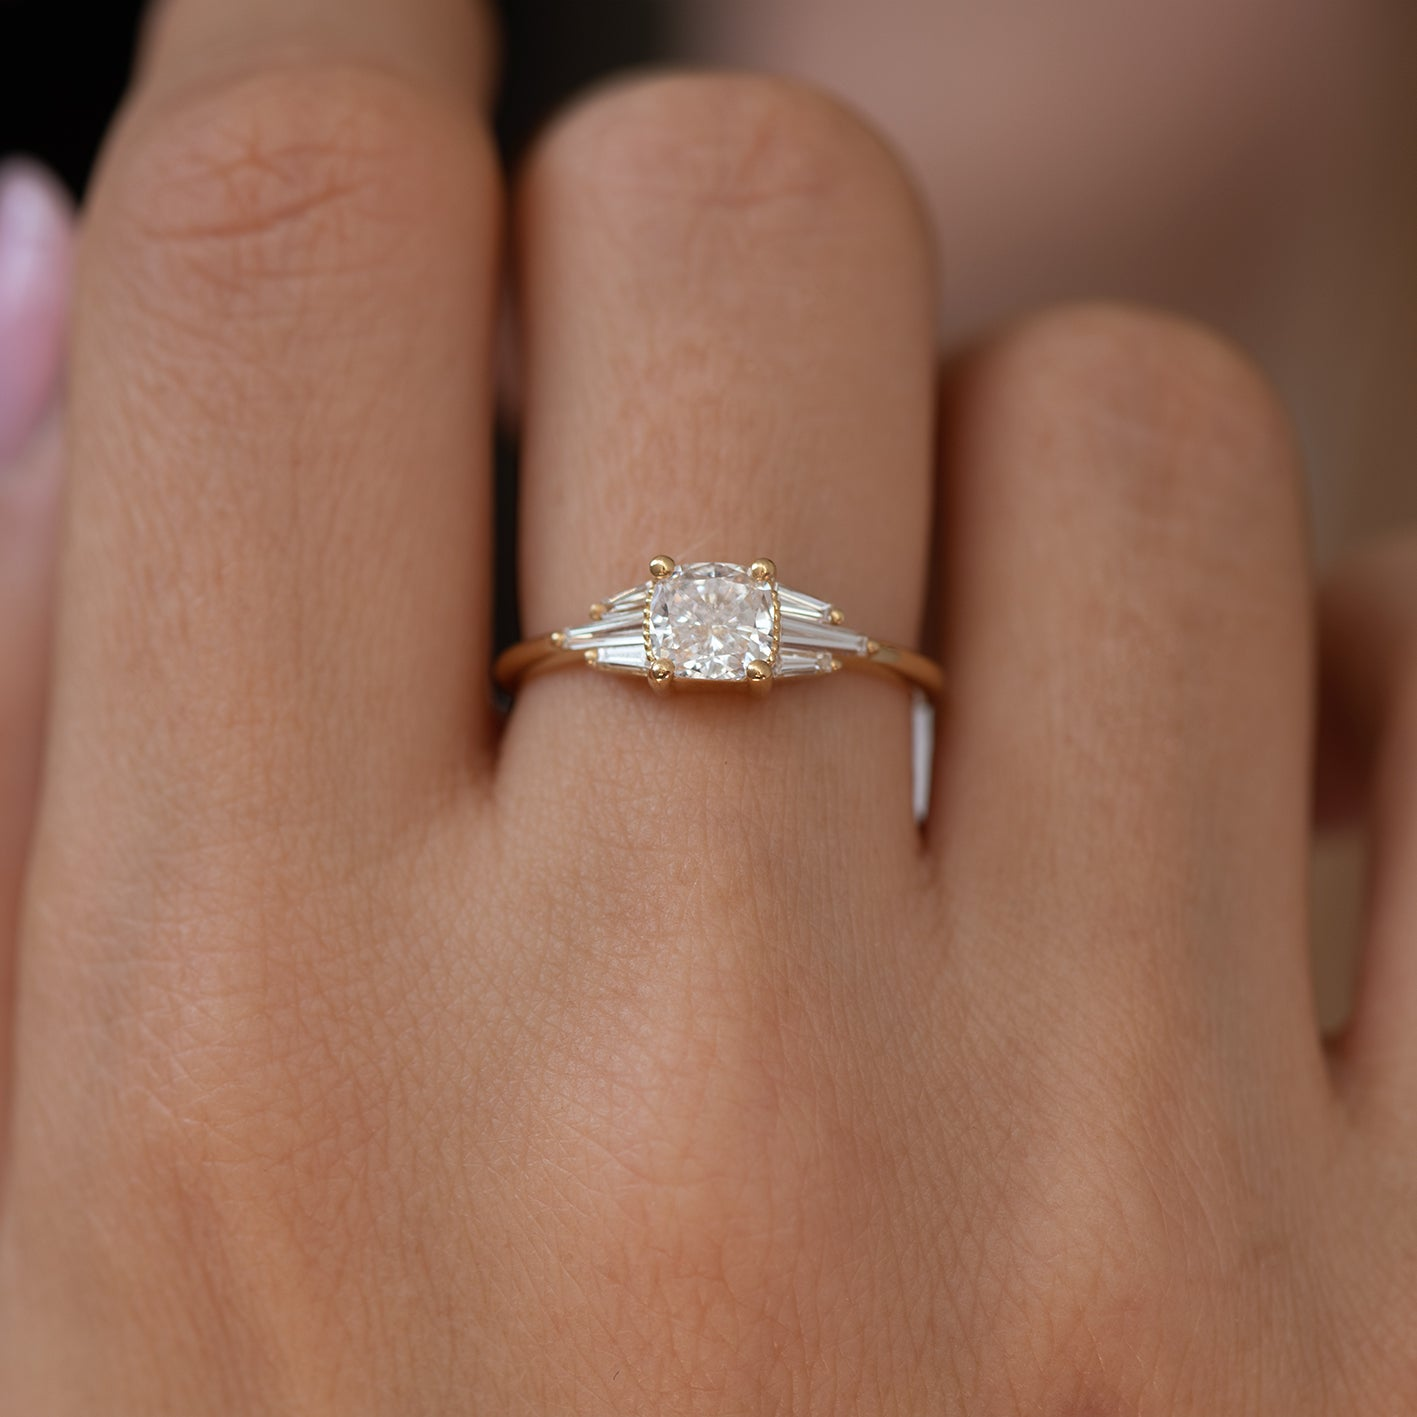 Deco Engagement Ring with Cushion Diamond4